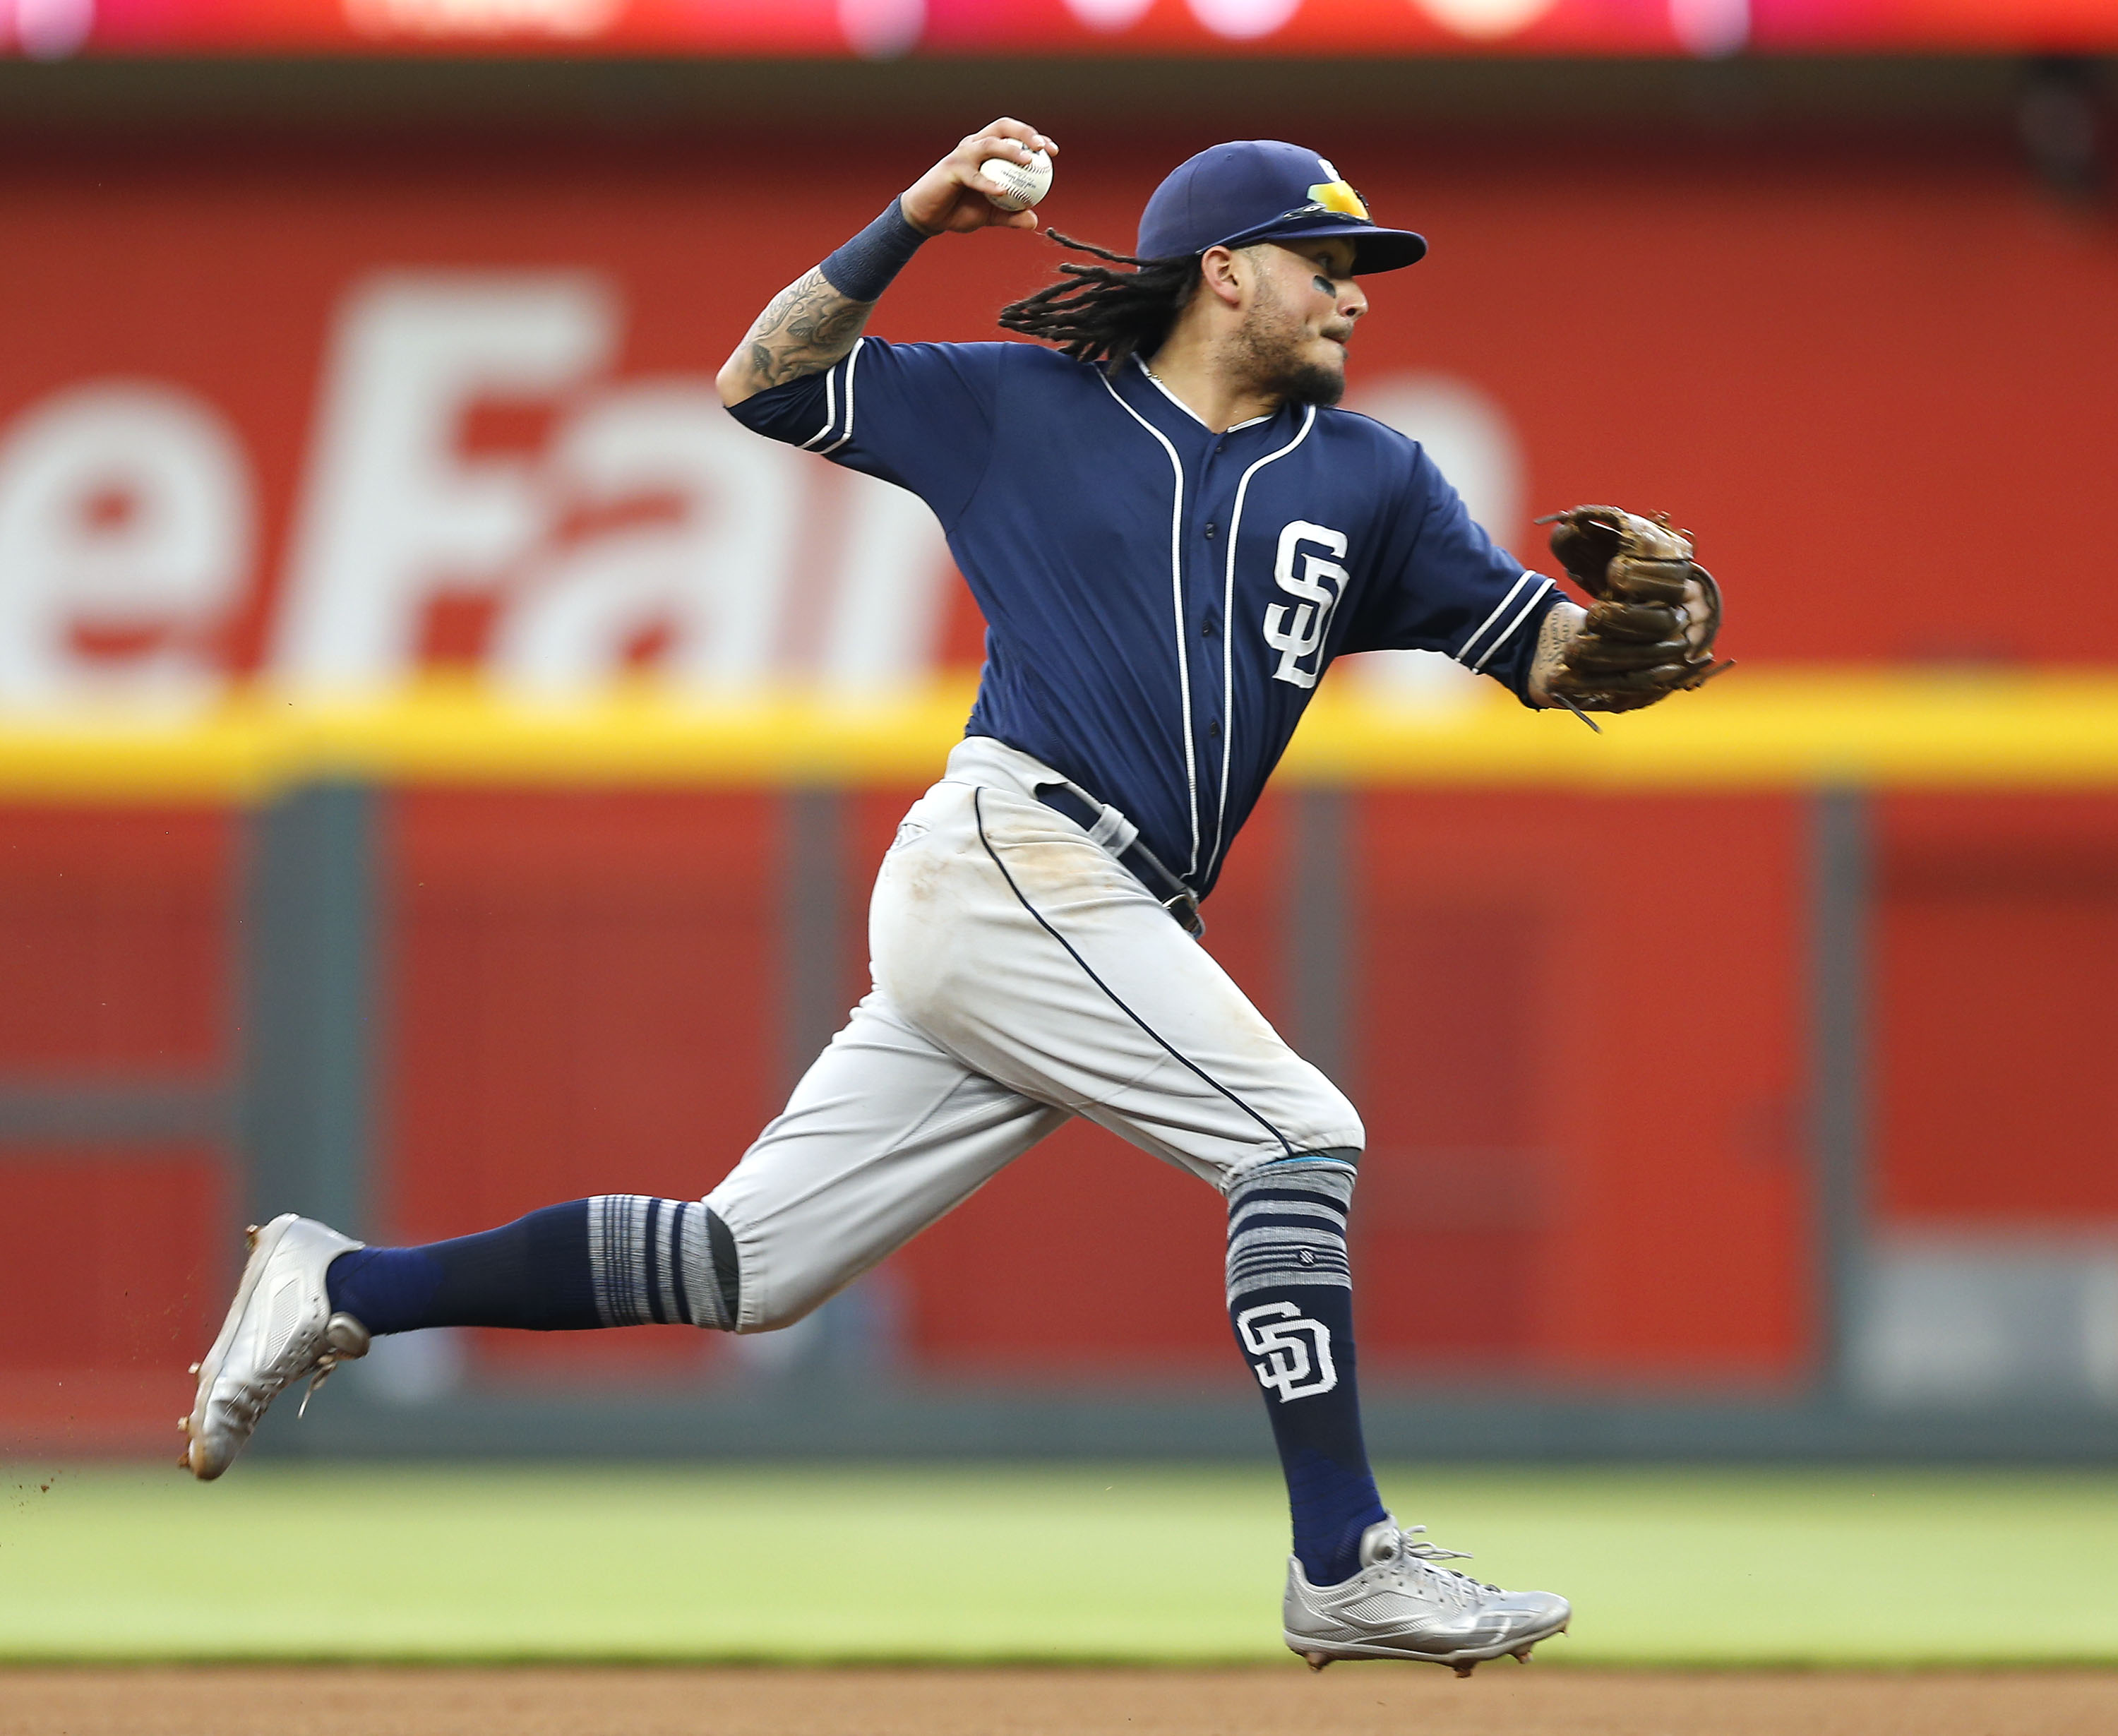 Shortstop Freddy Galvis #13 of the San Diego Padres. (Photo by Mike Zarrilli/Getty Images)